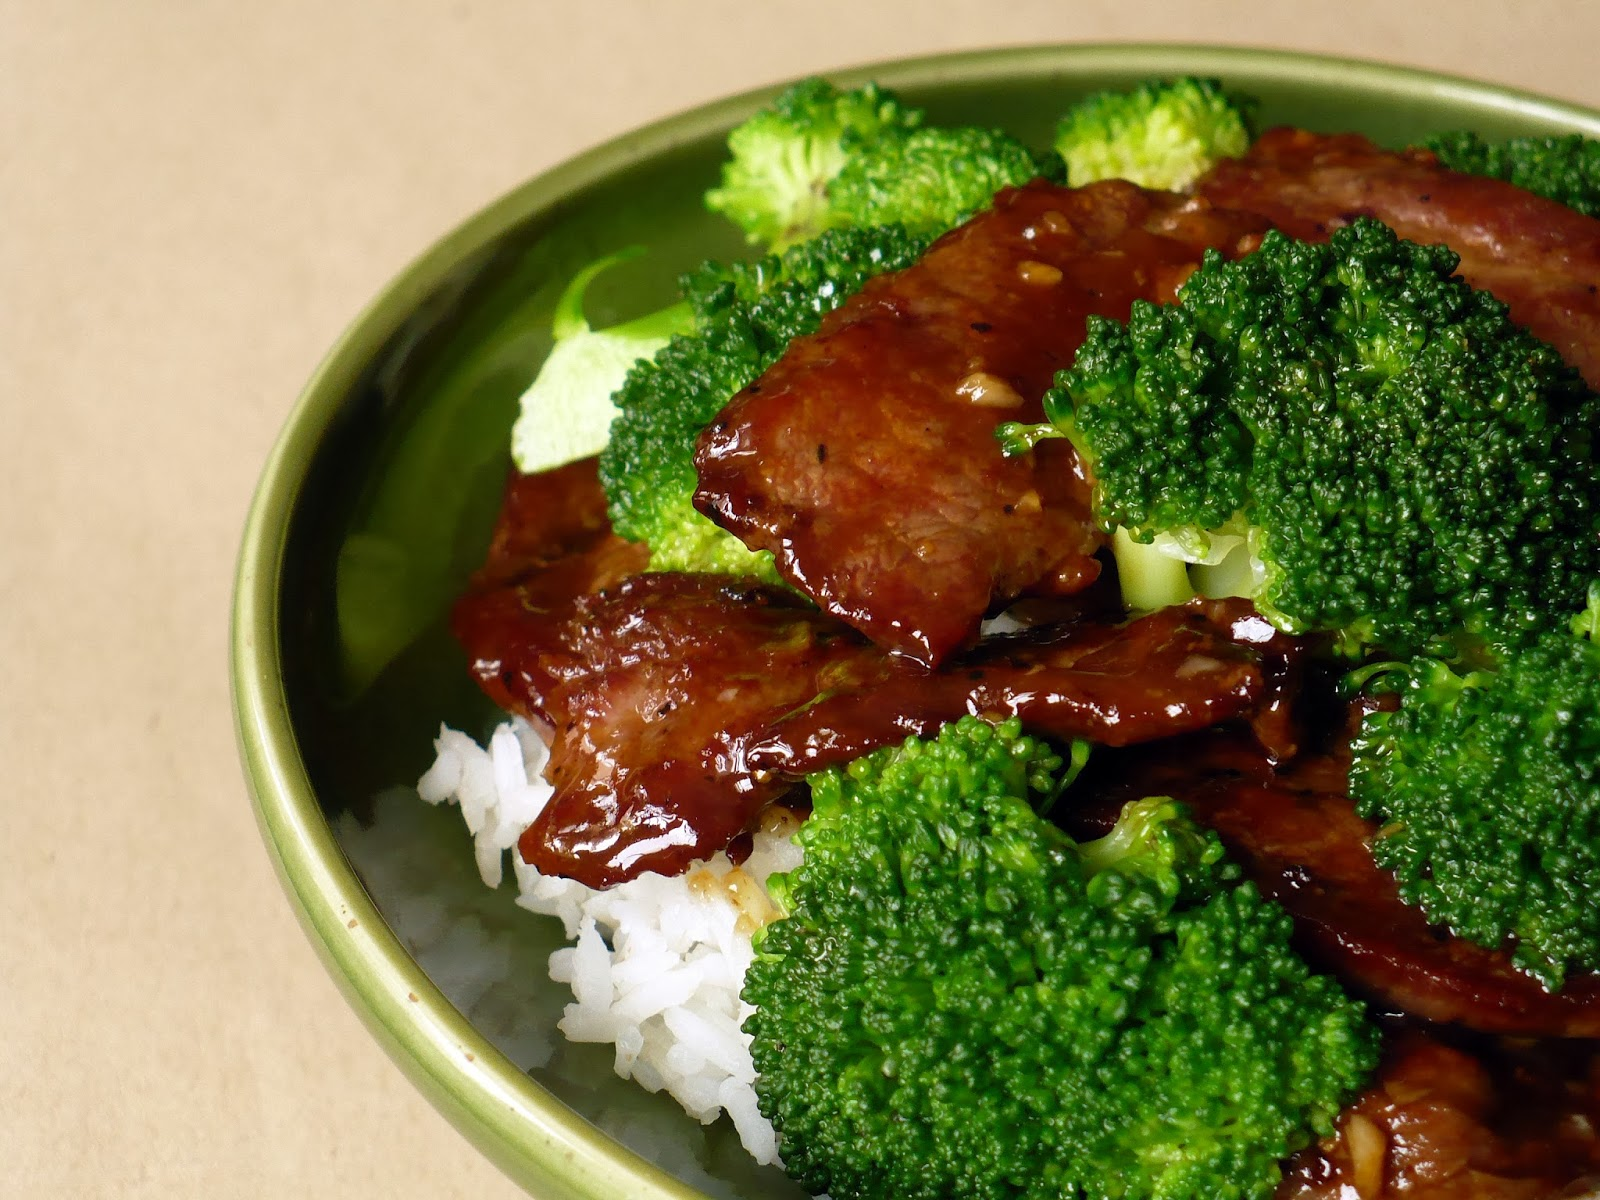 Our Awesome Kitchen!: Beef with Broccoli